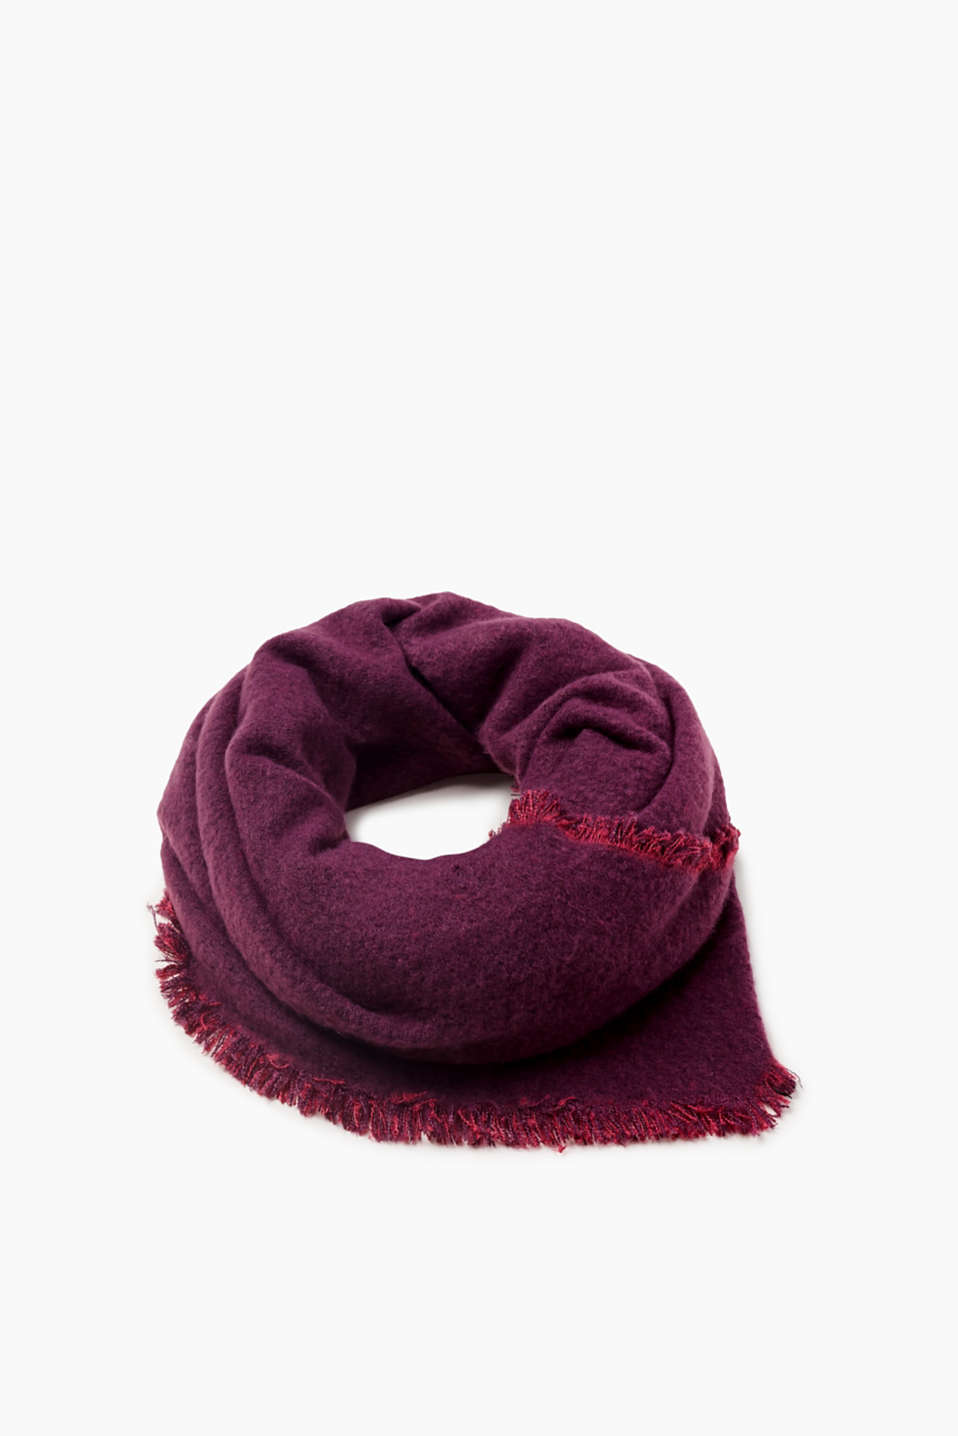 Cosy and warm! This scarf is bound to impress